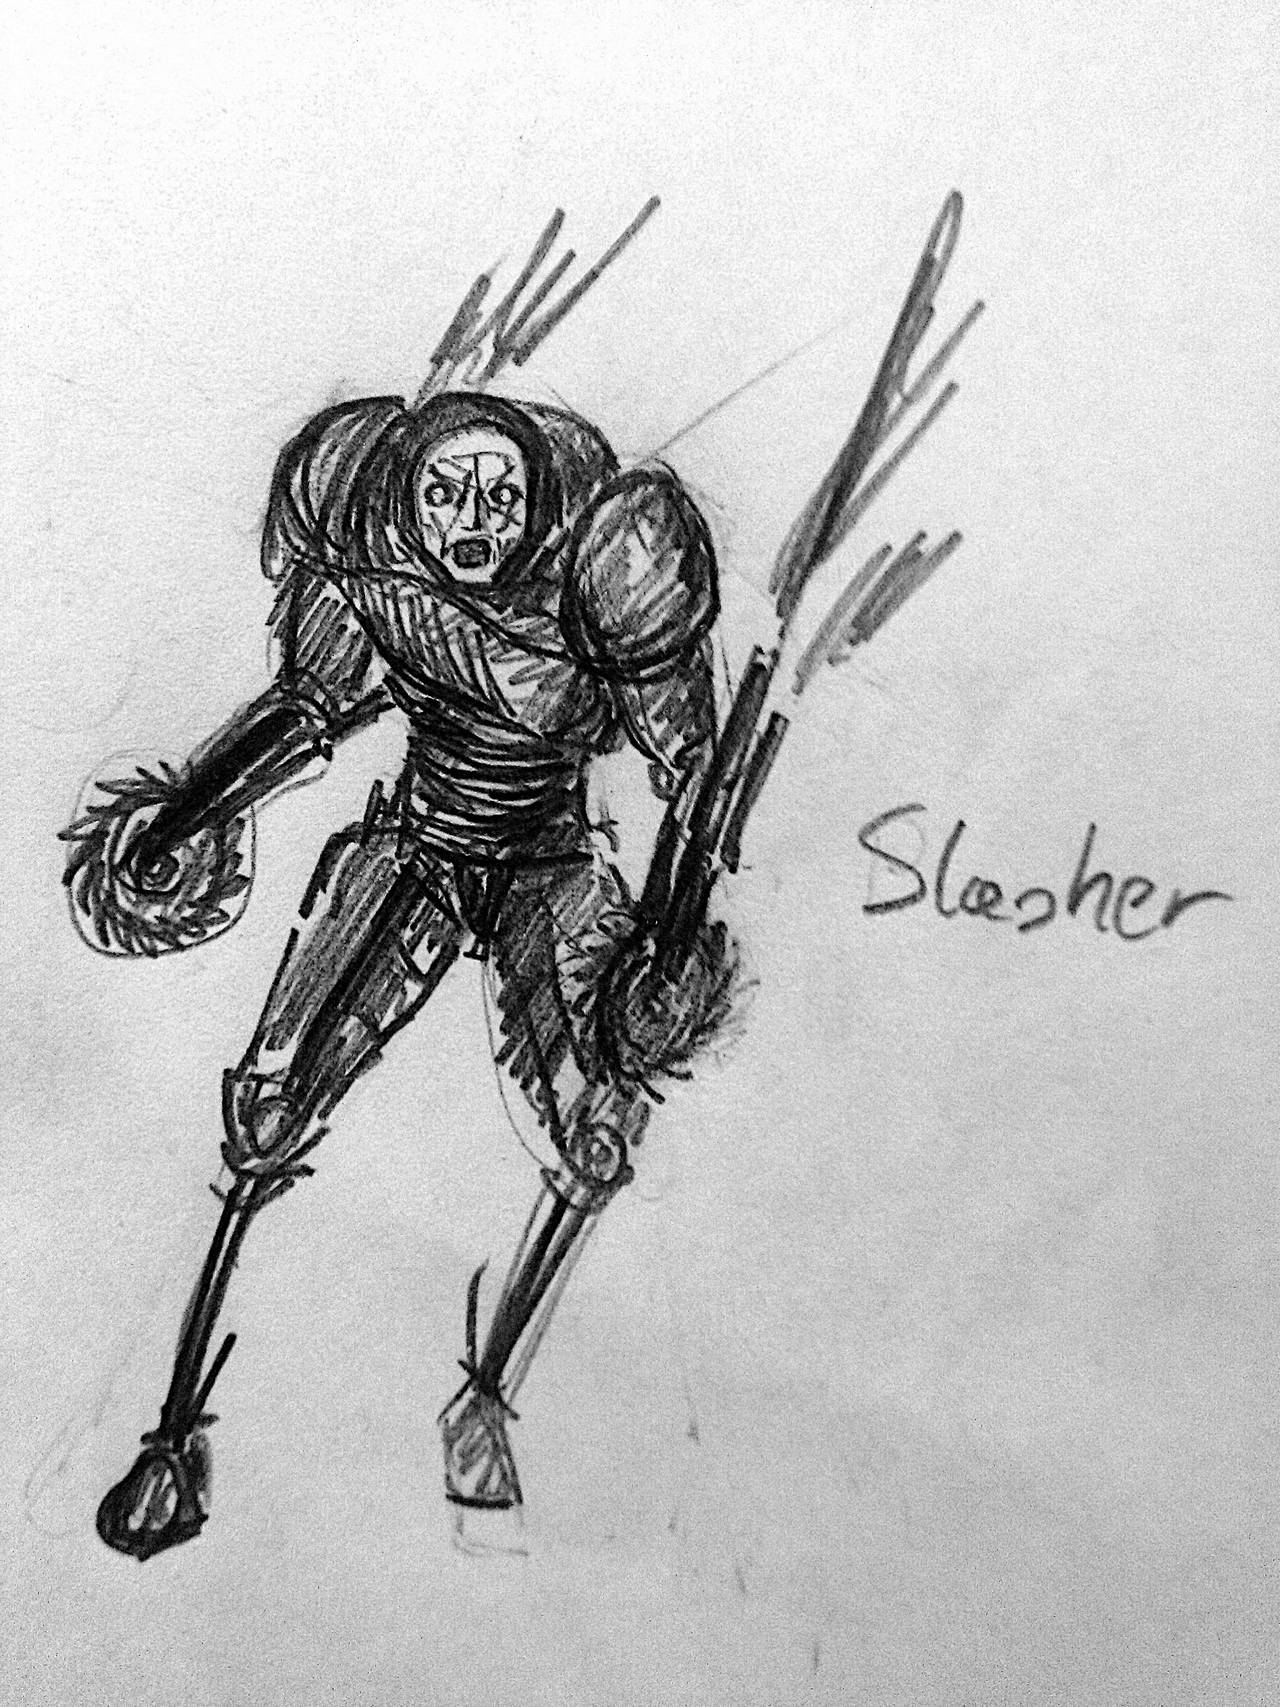 slasher_by_huginthecrowda_dcw4pmq-fullvi